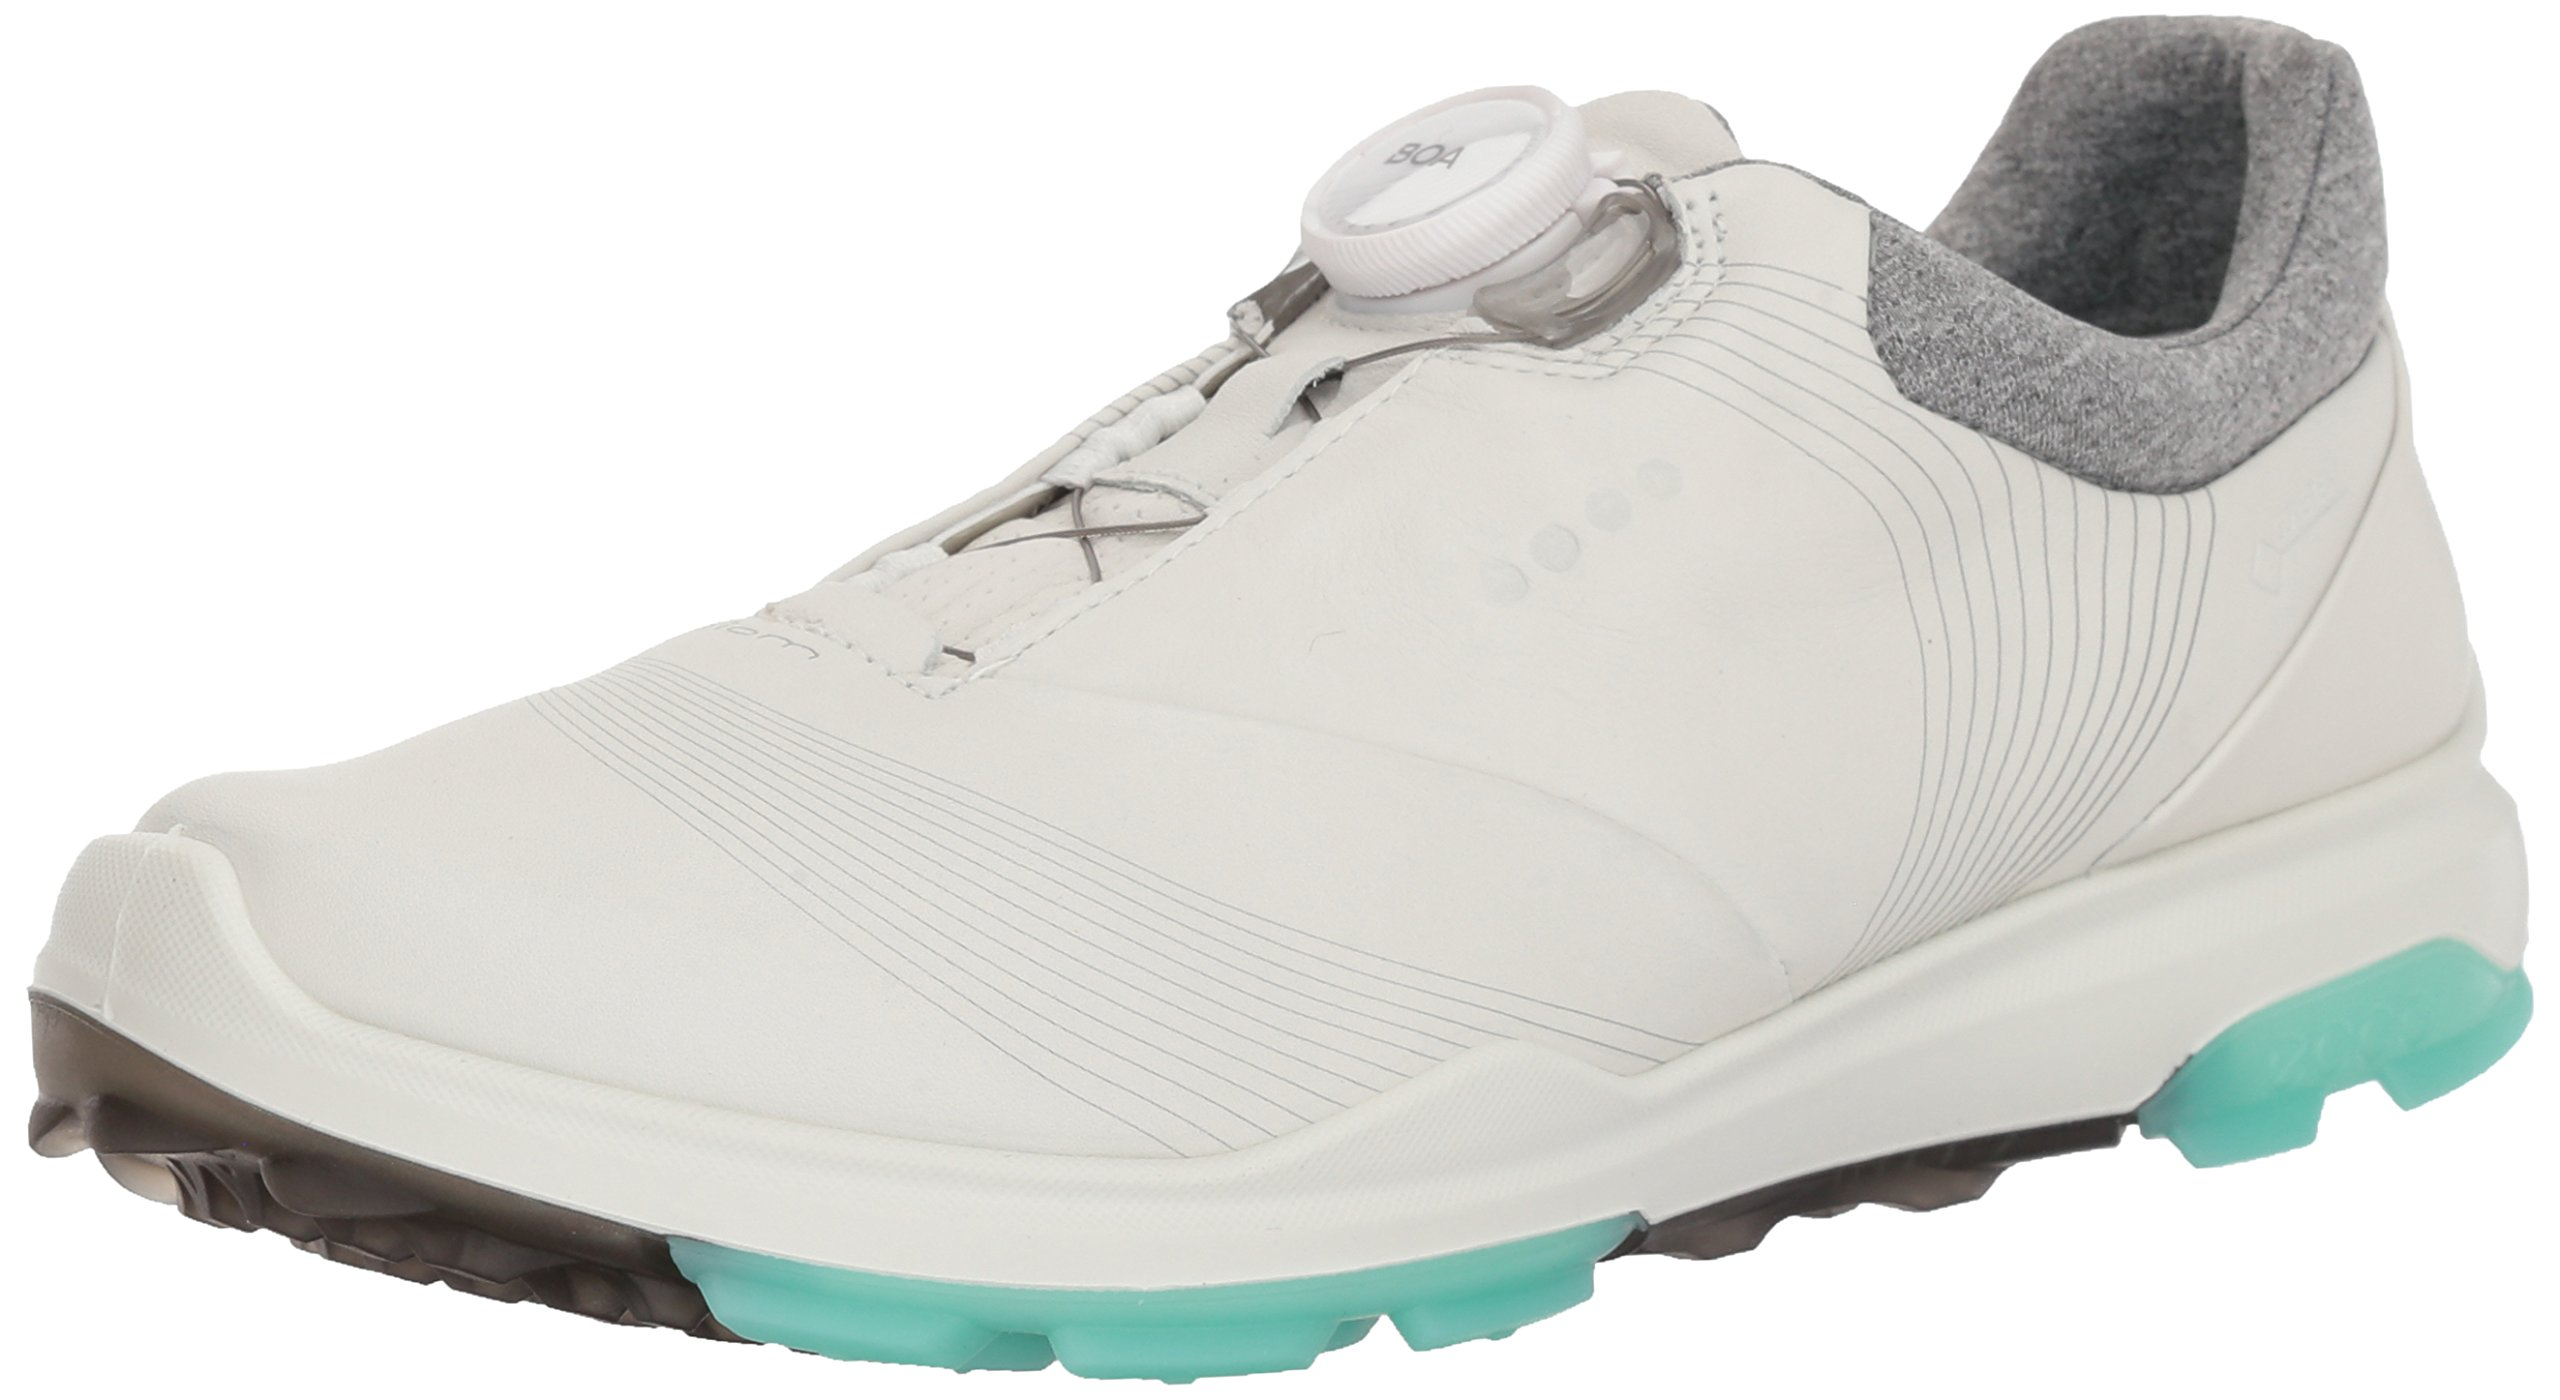 ECCO Women's Biom Hybrid 3 BOA Gore-Tex Golf Shoe, White/Emerald Yak Leather, 5 M US by ECCO